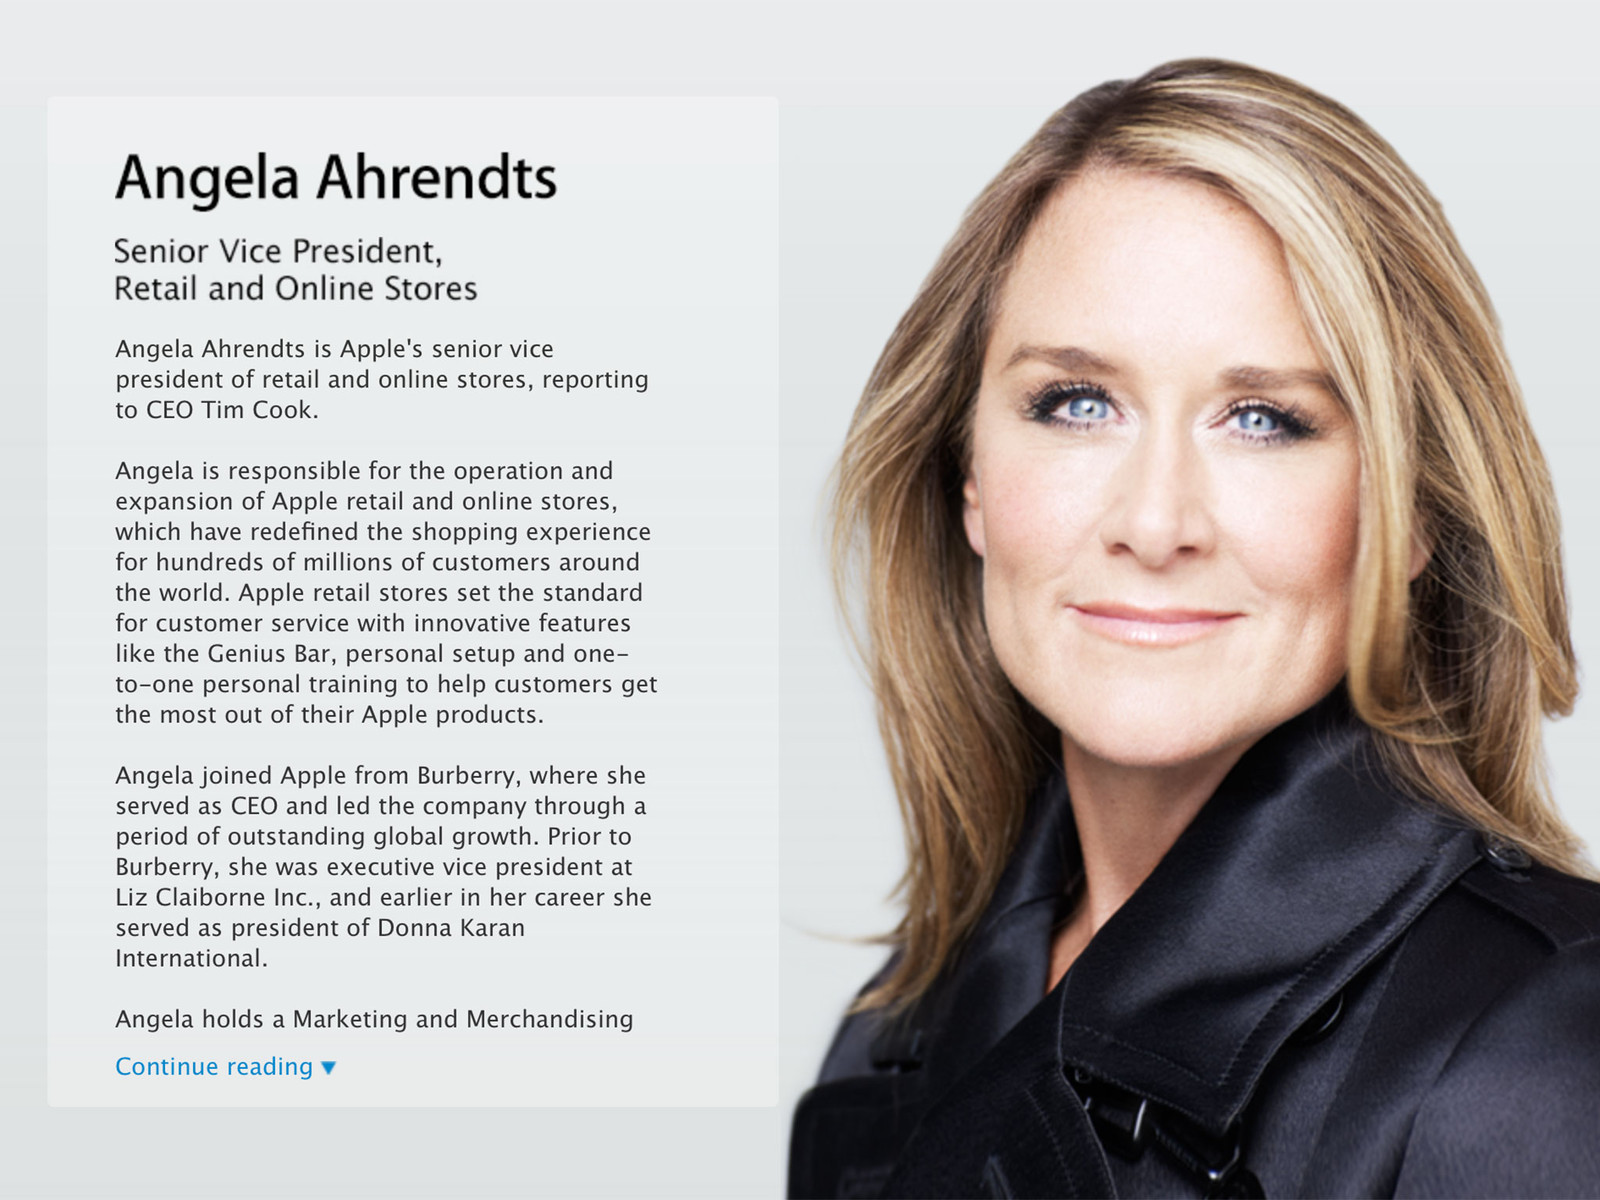 Angela Ahrendts leaves fashion for Apple as new svp of online and retail stores